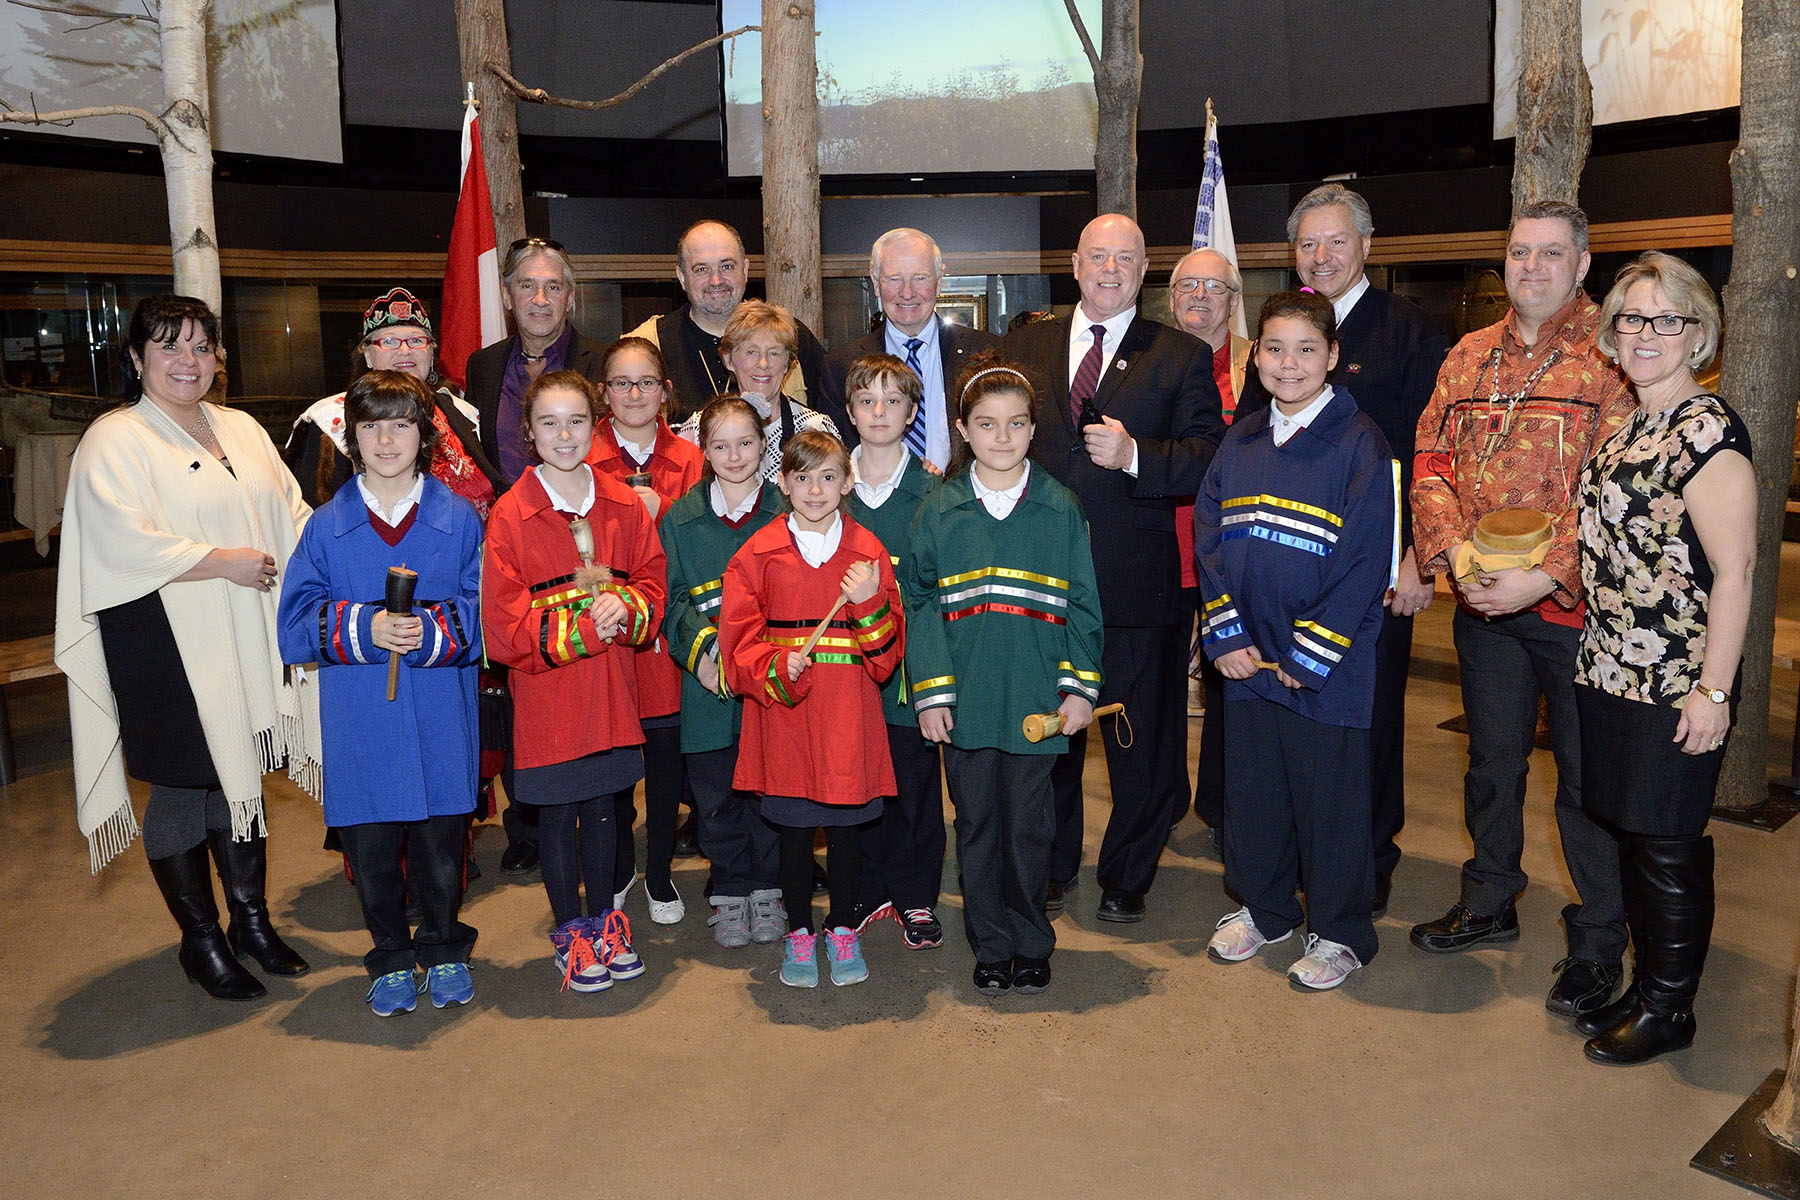 Their Excellencies were welcomed by Konrad Sioui, Grand Chief and the Family Chiefs of the Huron-Wendat Nation during their visit to Wendake.